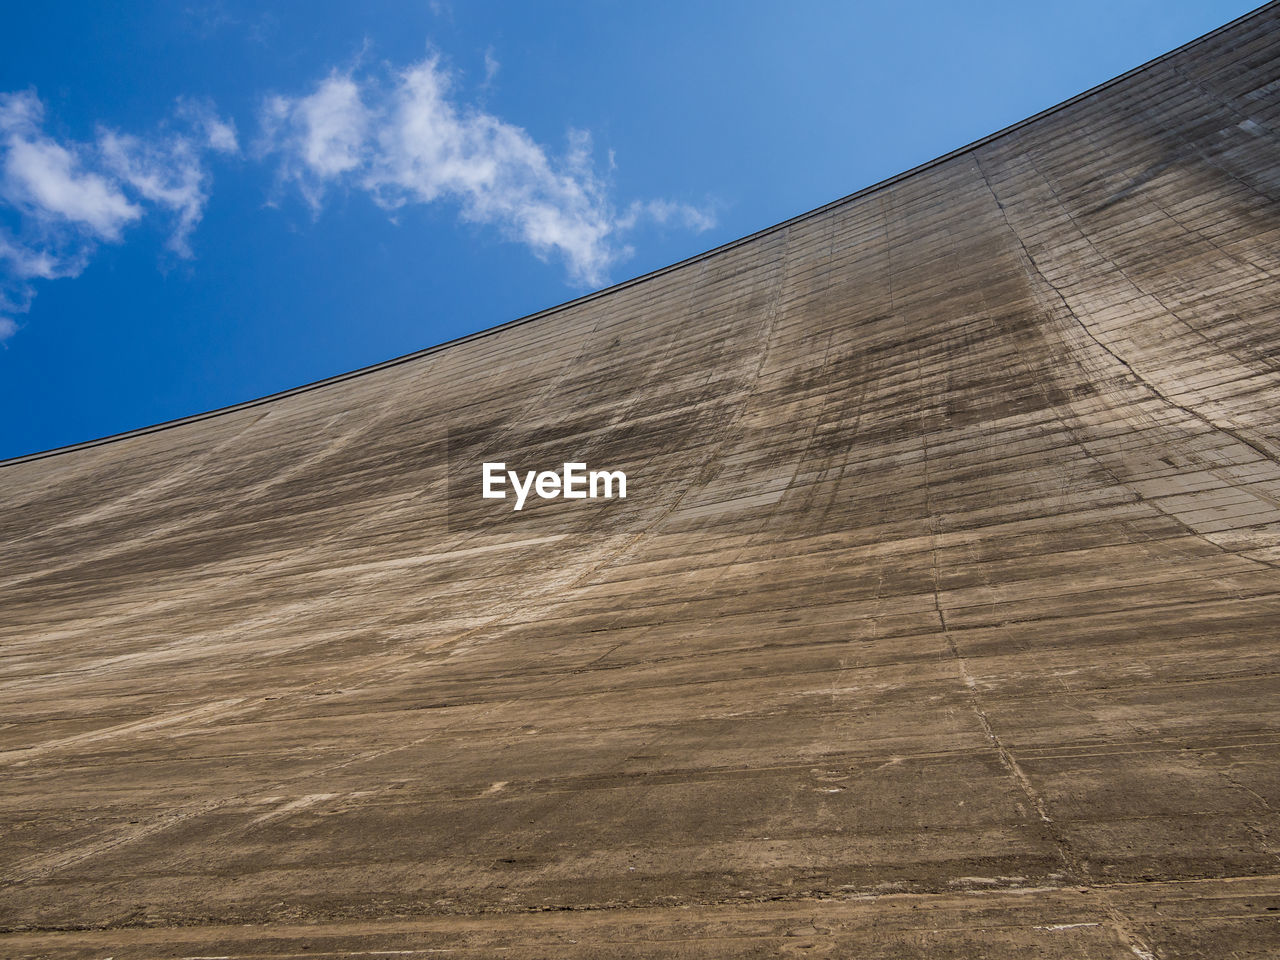 Low angle view of concrete dam wall at katse dam, lesotho, africa